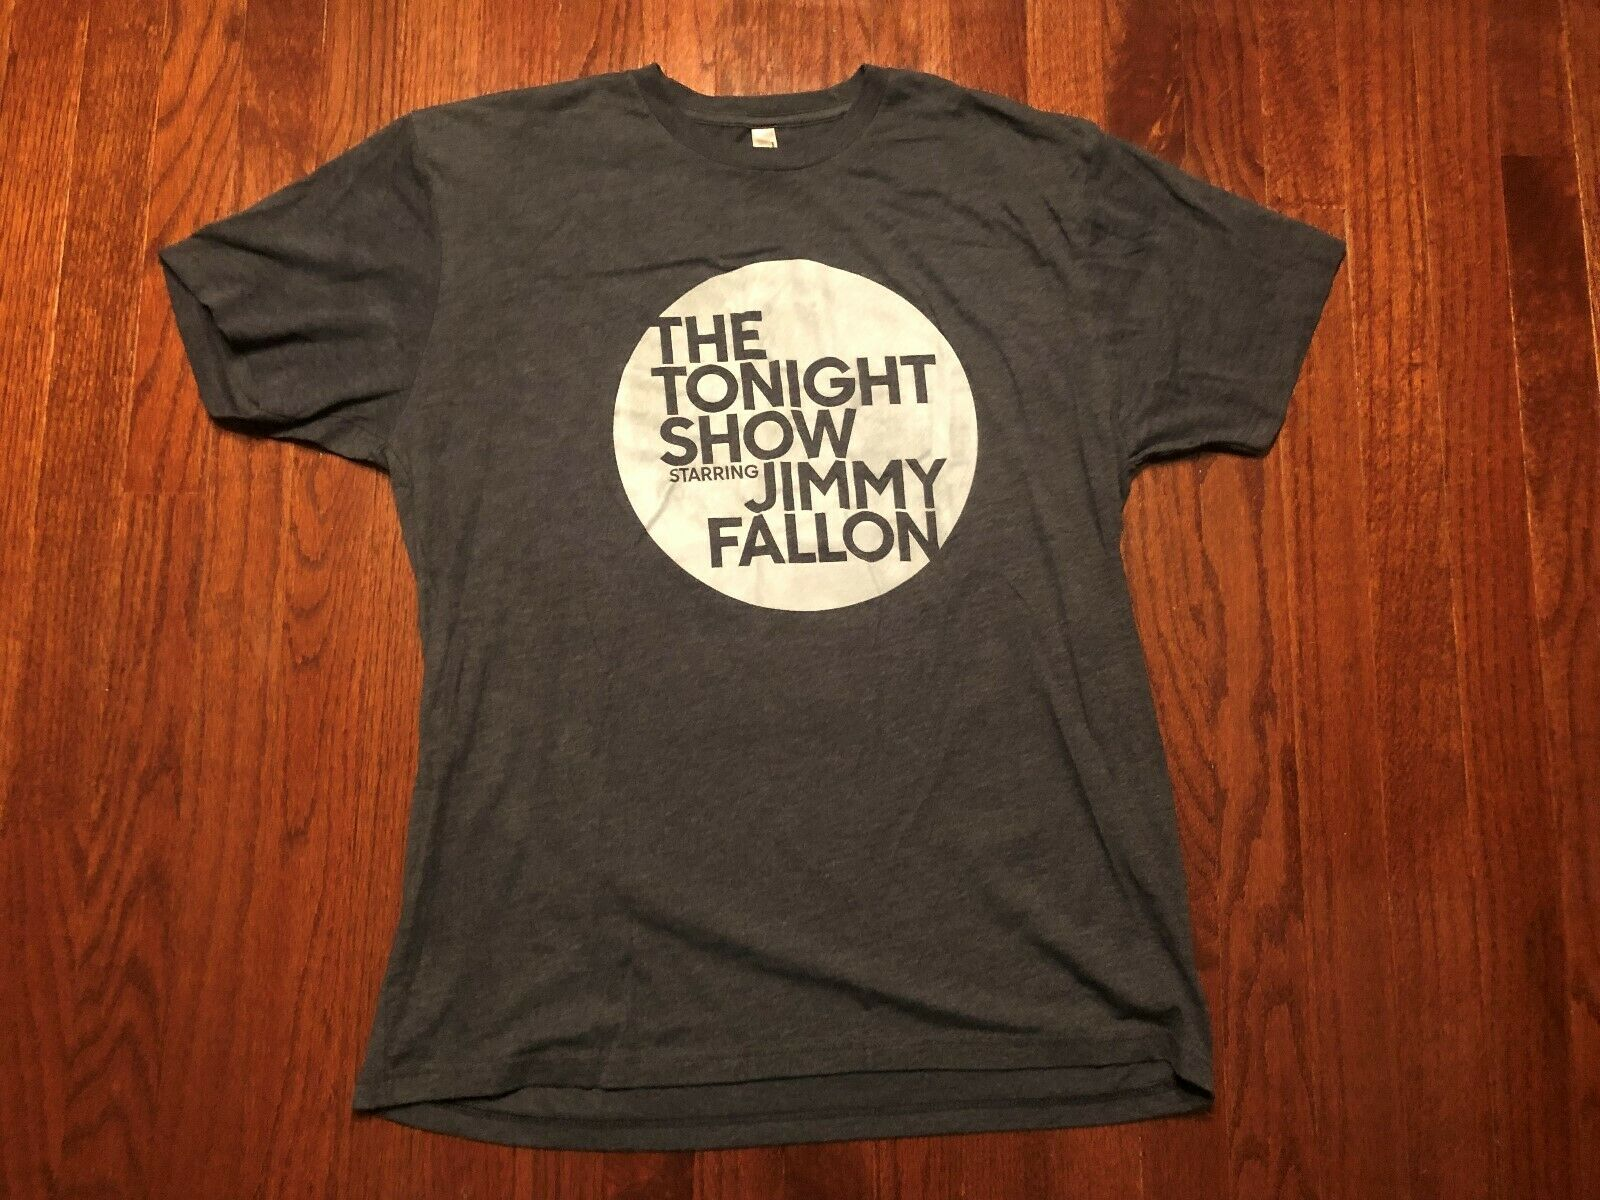 <font><b>THE</b></font> <font><b>TONIGHT</b></font> <font><b>SHOW</b></font> STARRING JIMMY FALLON T SHIRT MENS XL GRAY TV NIGHT image